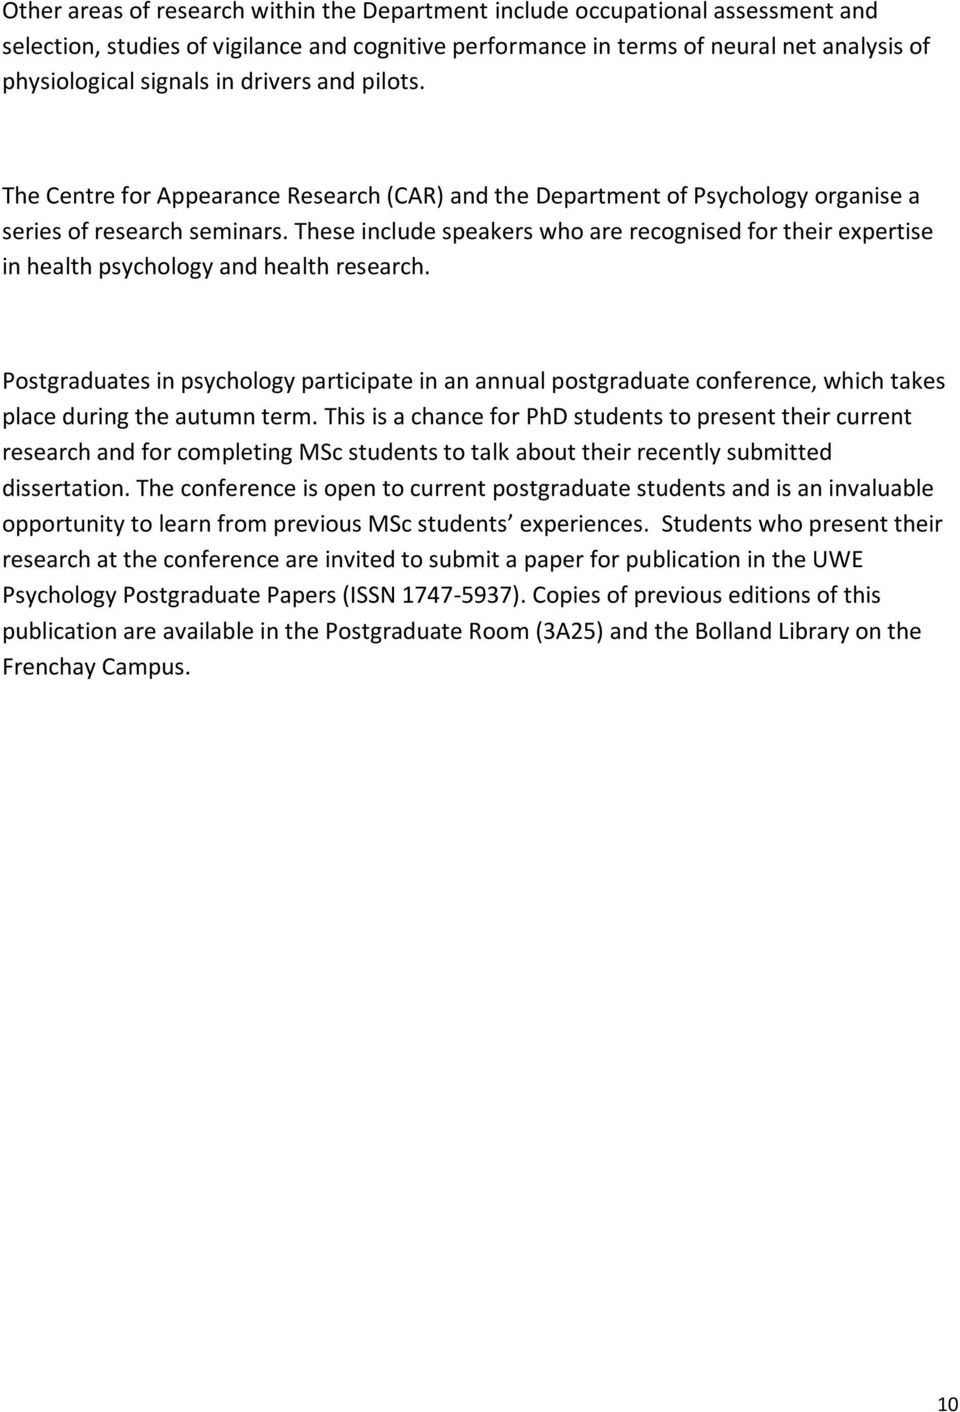 msc health psychology dissertation The topic health psychology is presenting an excellent theme for the dissertation writing and also with the readers it will make the person who reads the dissertation paper very pleased there are several points the writer has to include or write while lettering a dissertation paper on health psychology.